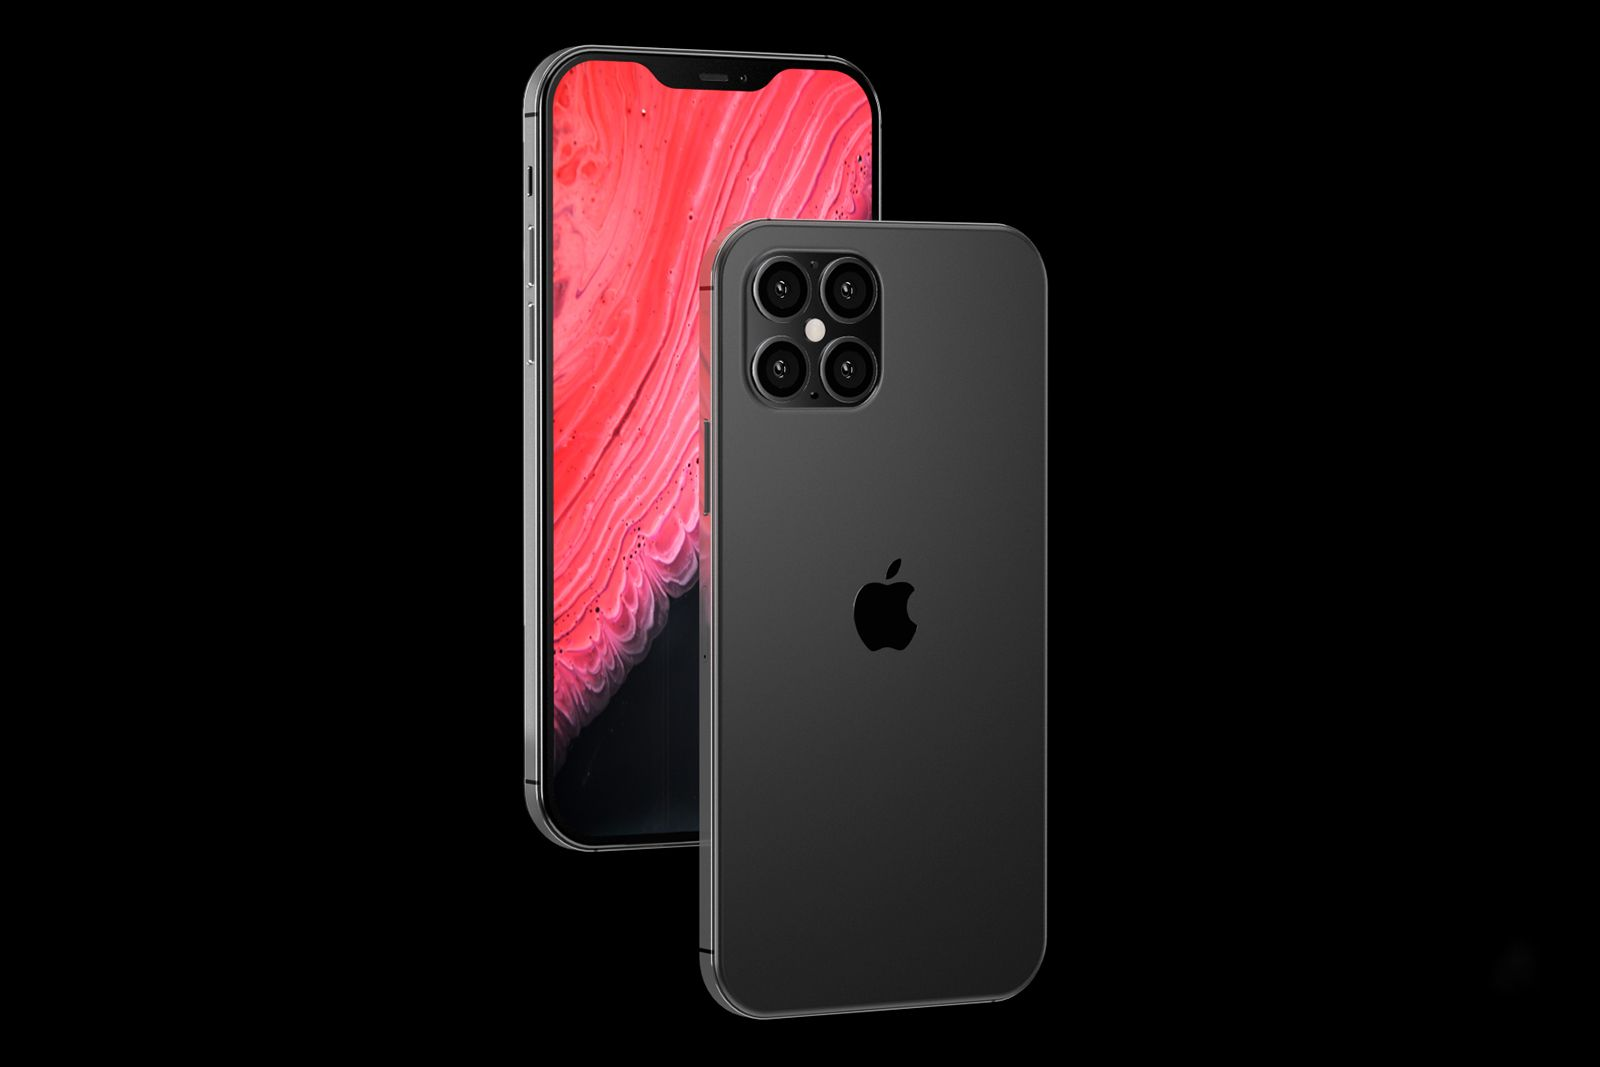 12 Advantages Of Iphone 12 Pro Max Wallpapers And How You Can Make Full Use Of It Iphone 12 Pro Max Wallpapers In 2020 Iphone 9 Wallpaper Iphone 9 Iphone